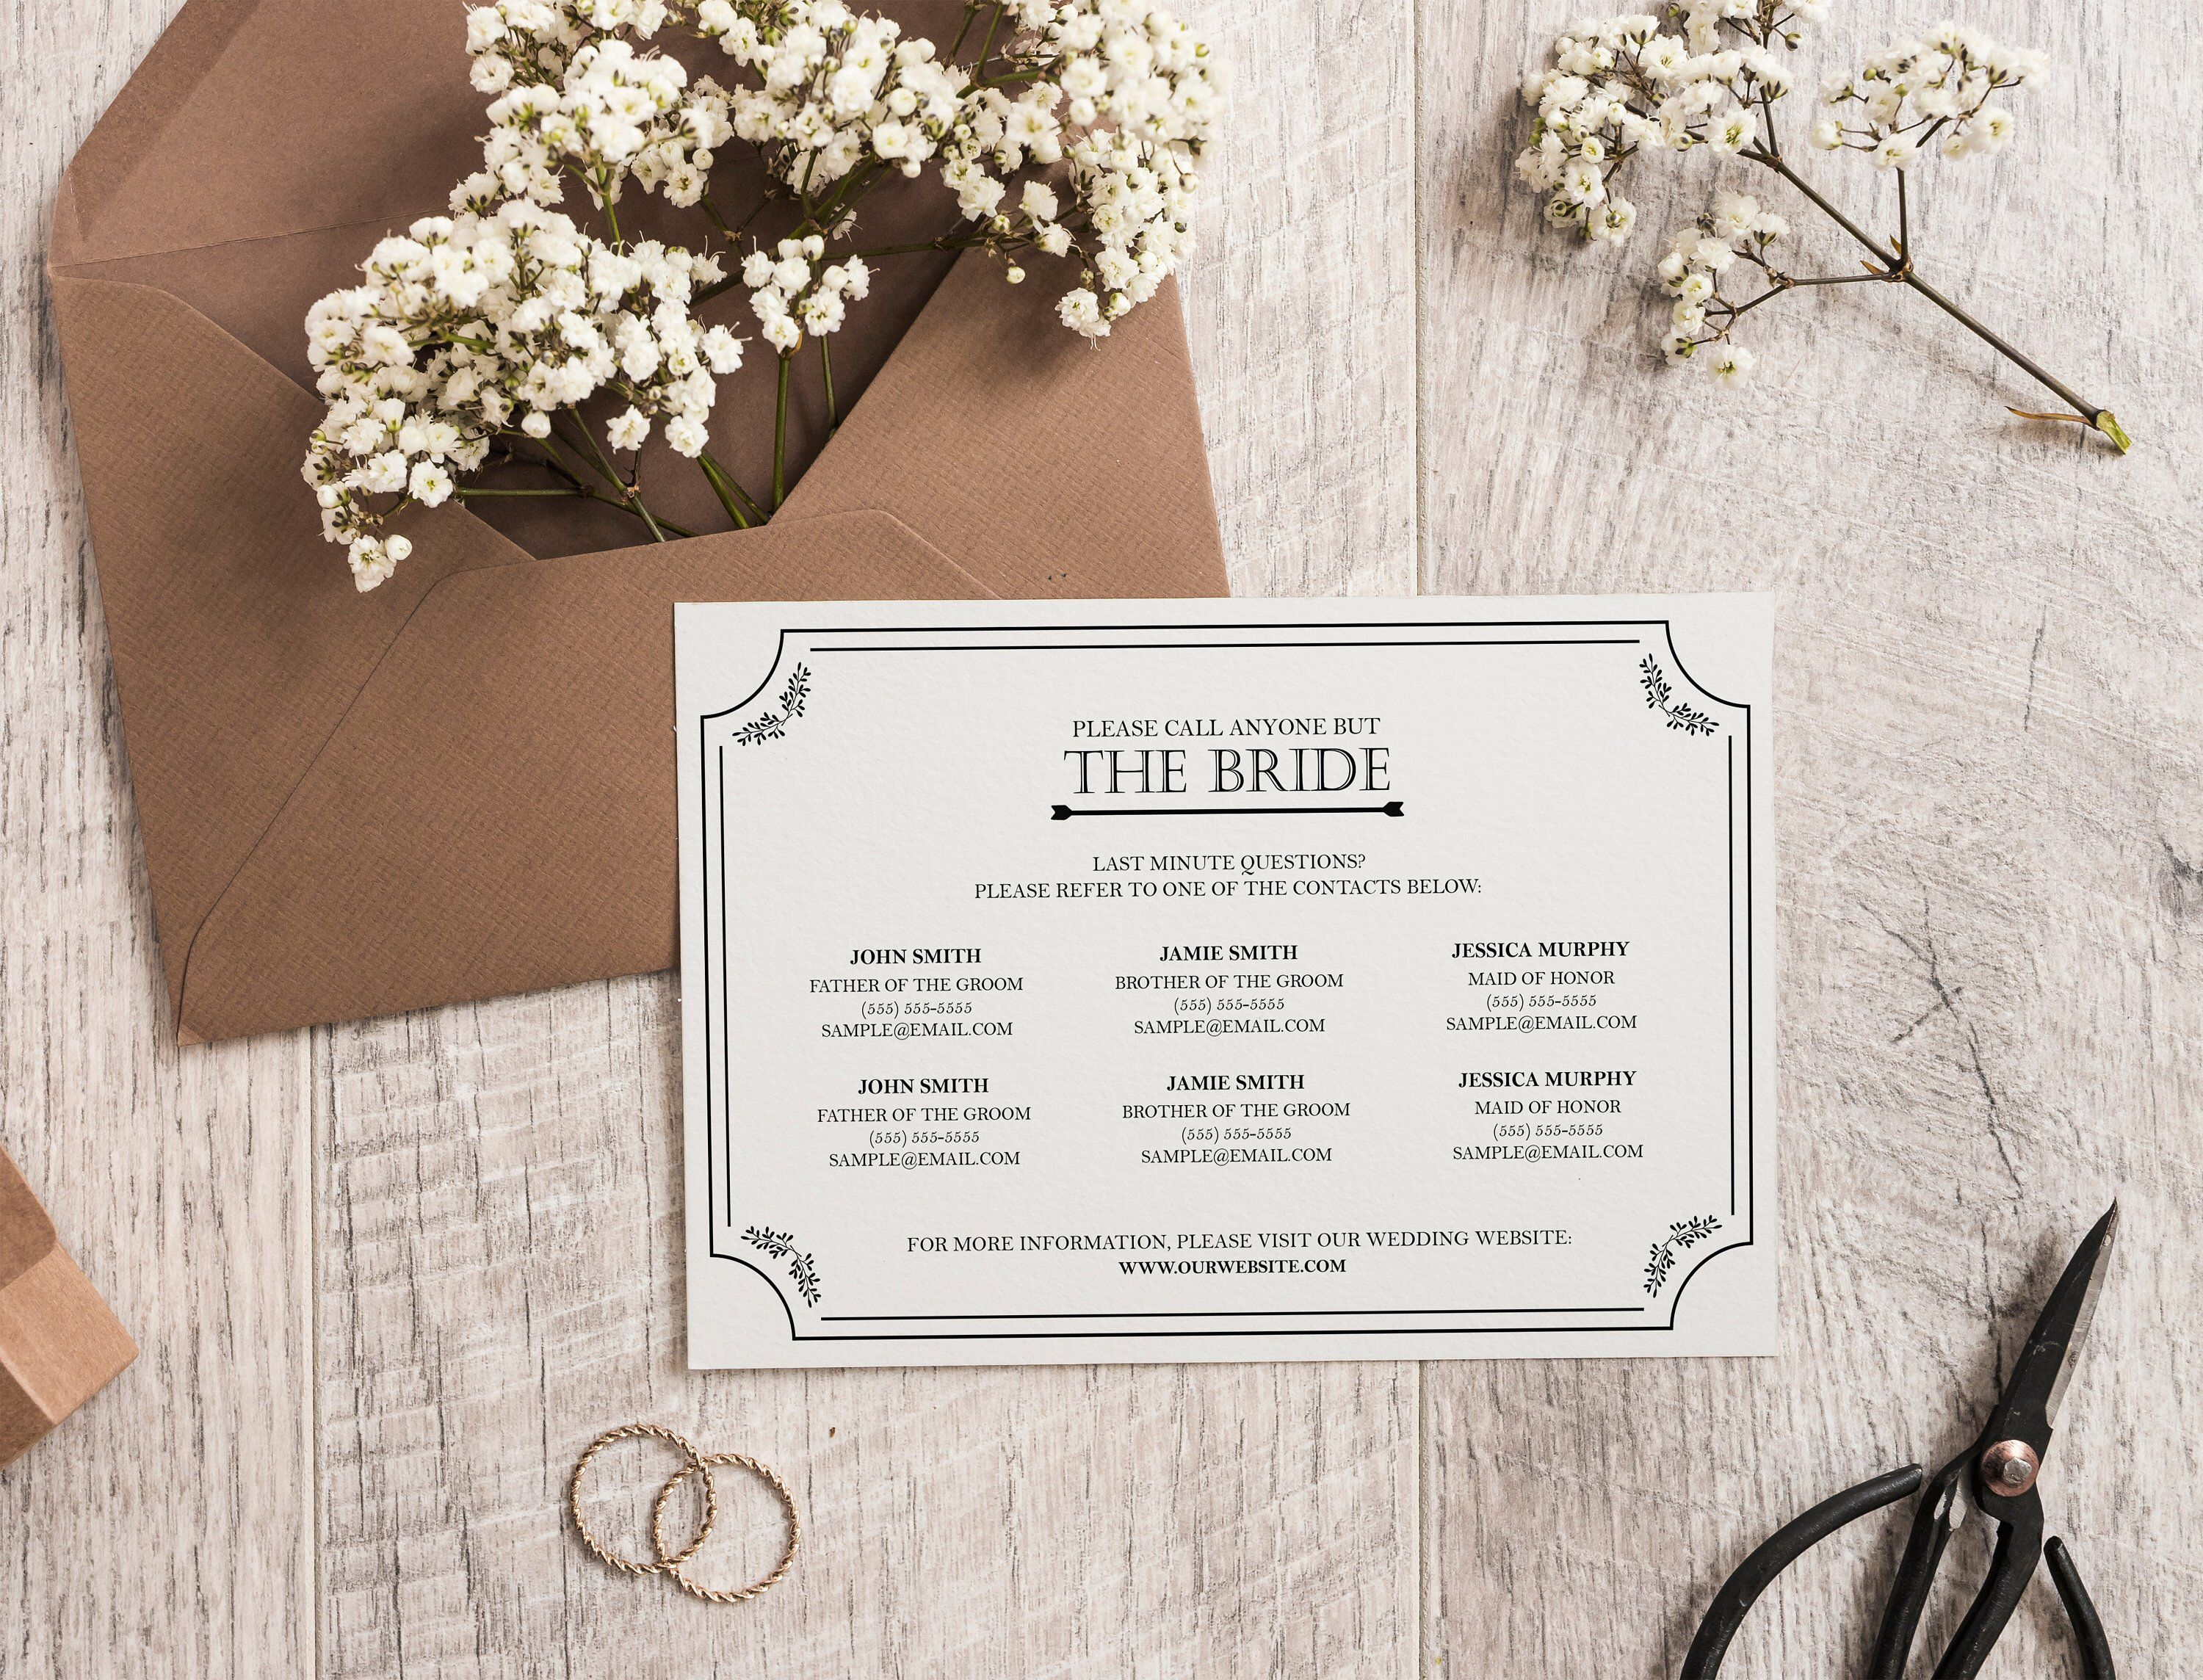 Call Anyone But The Bride Card // Wedding Phone Number Contact